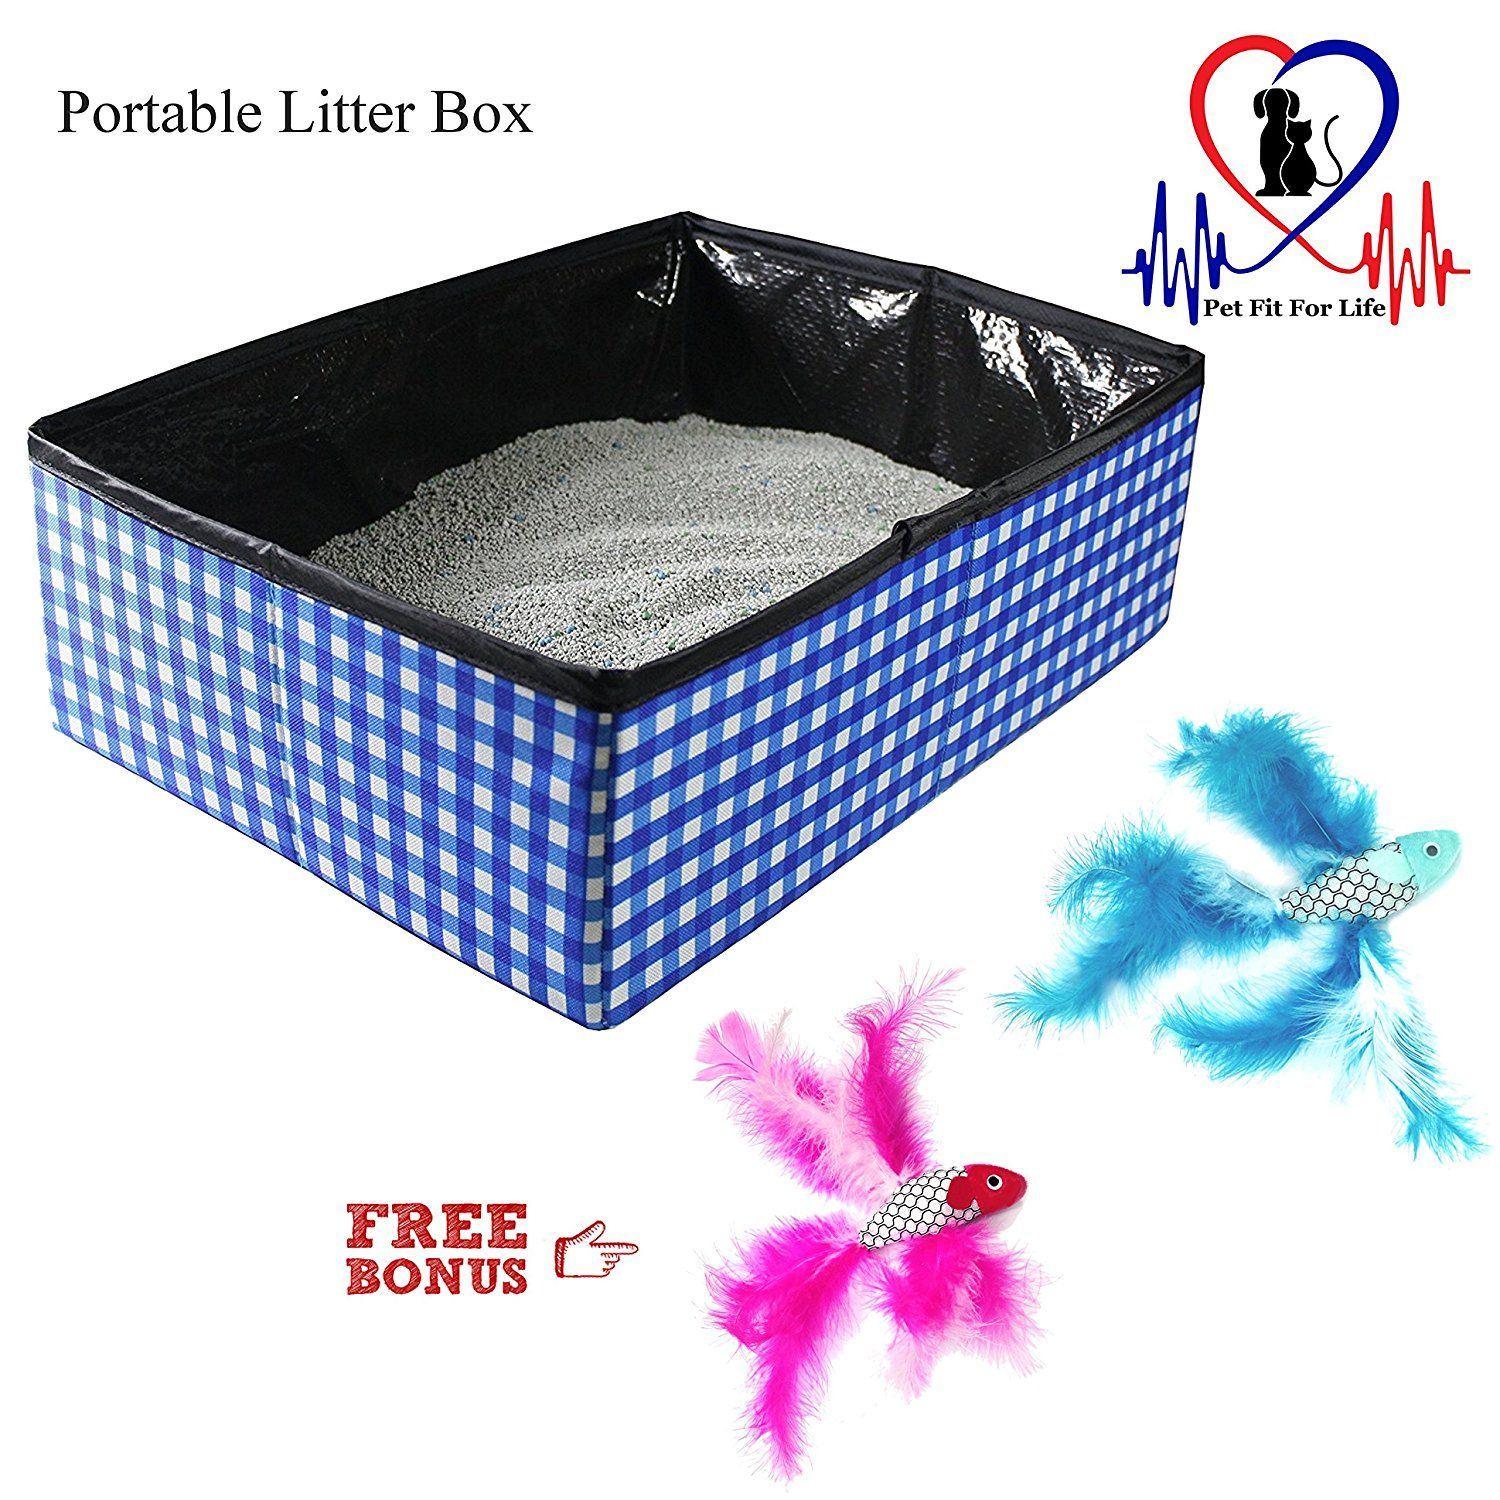 Pet Fit For Life Collapsible Portable Litter Box And Bonus Pet Fit For Life Cat Feather Toy You Can Find More Deta Dog Litter Box Litter Box Pets